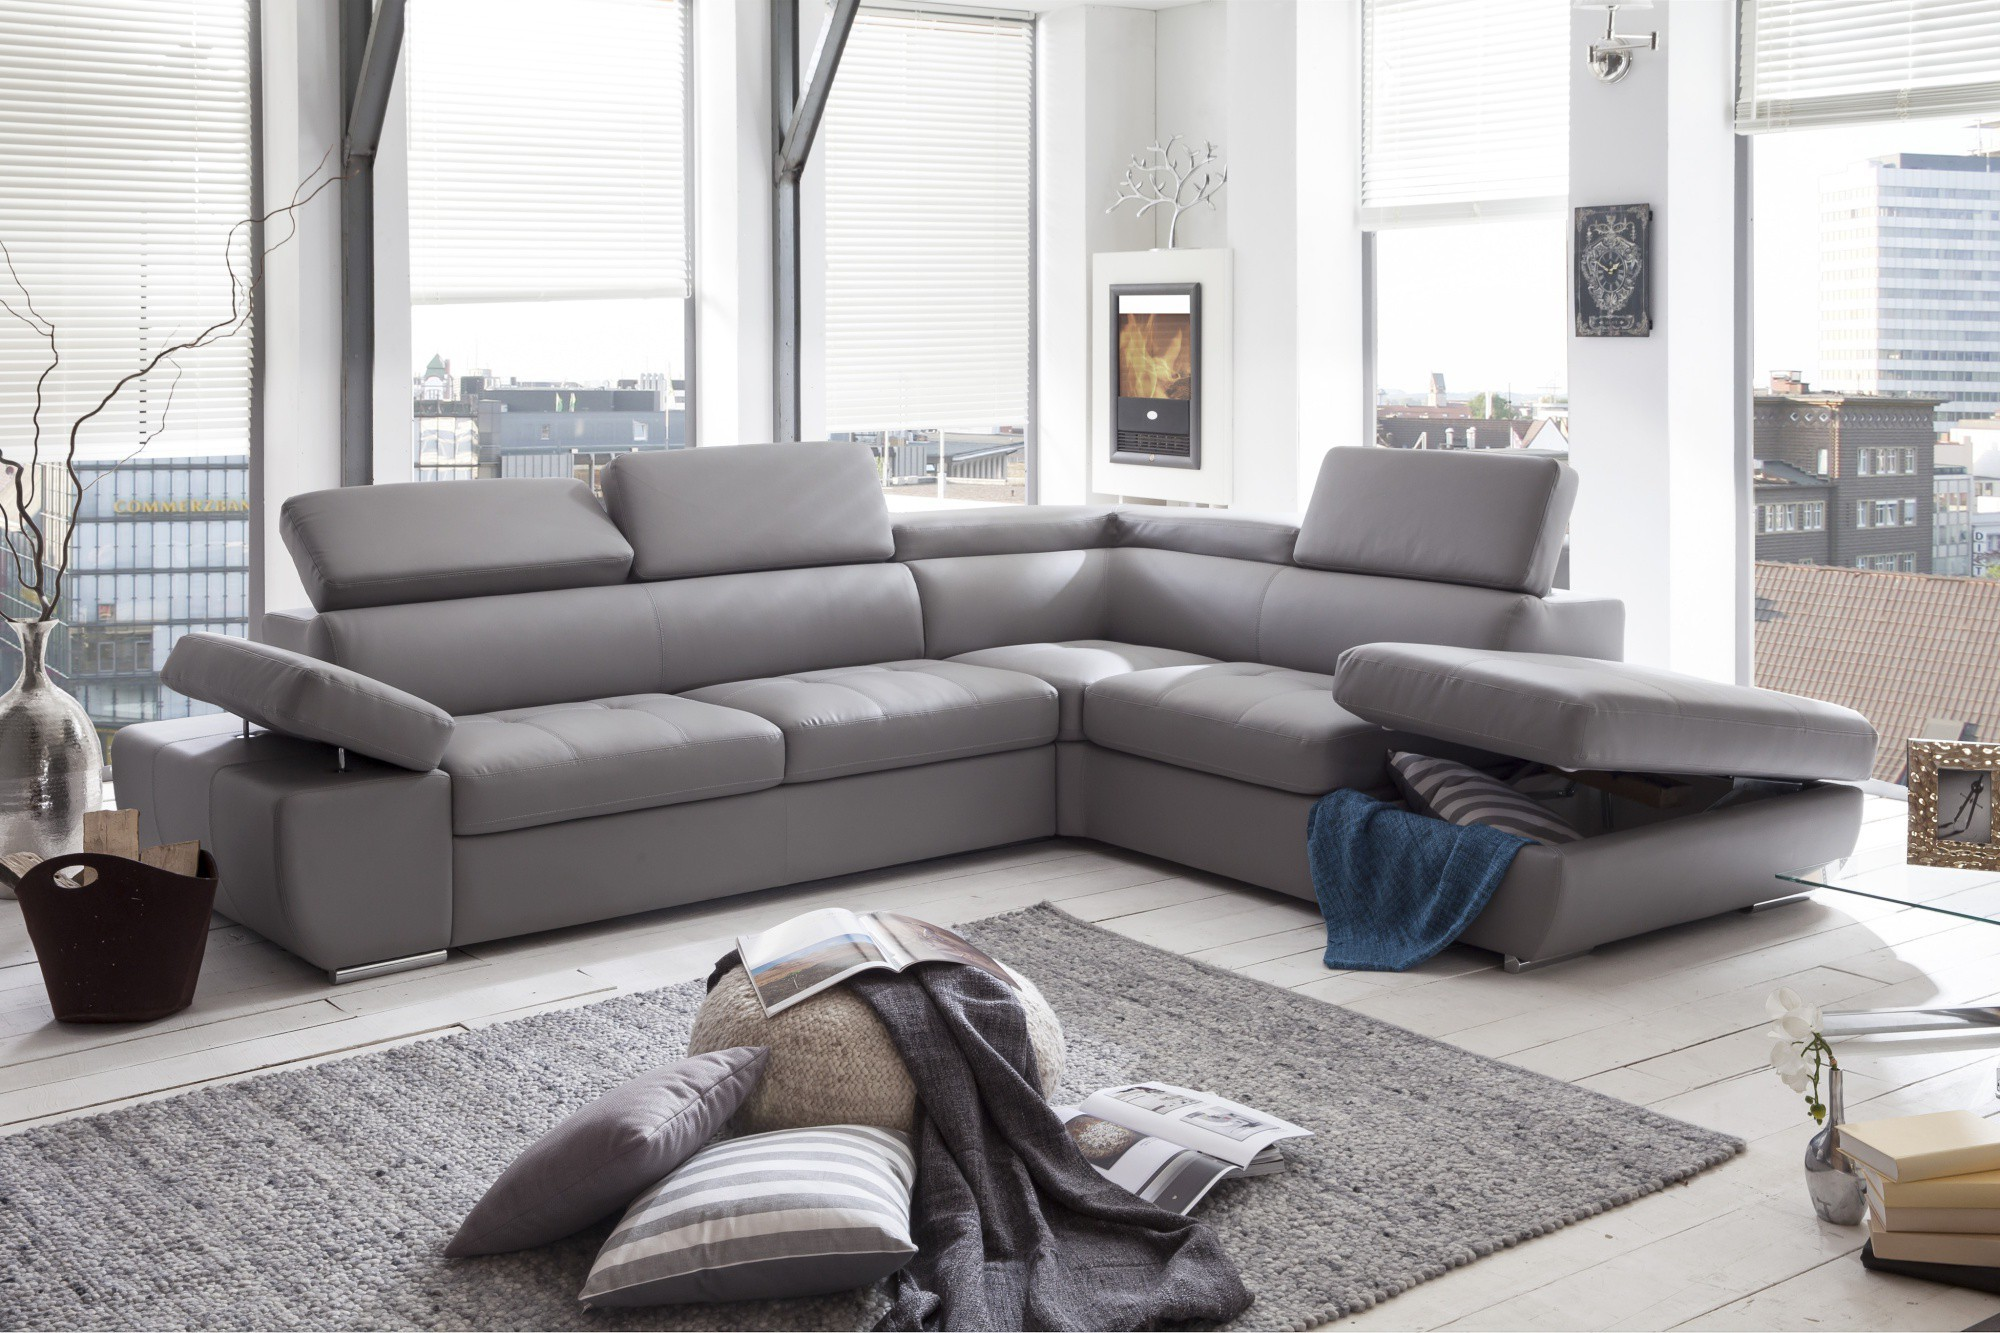 Canape Angle Convertible Simili Cuir Gris